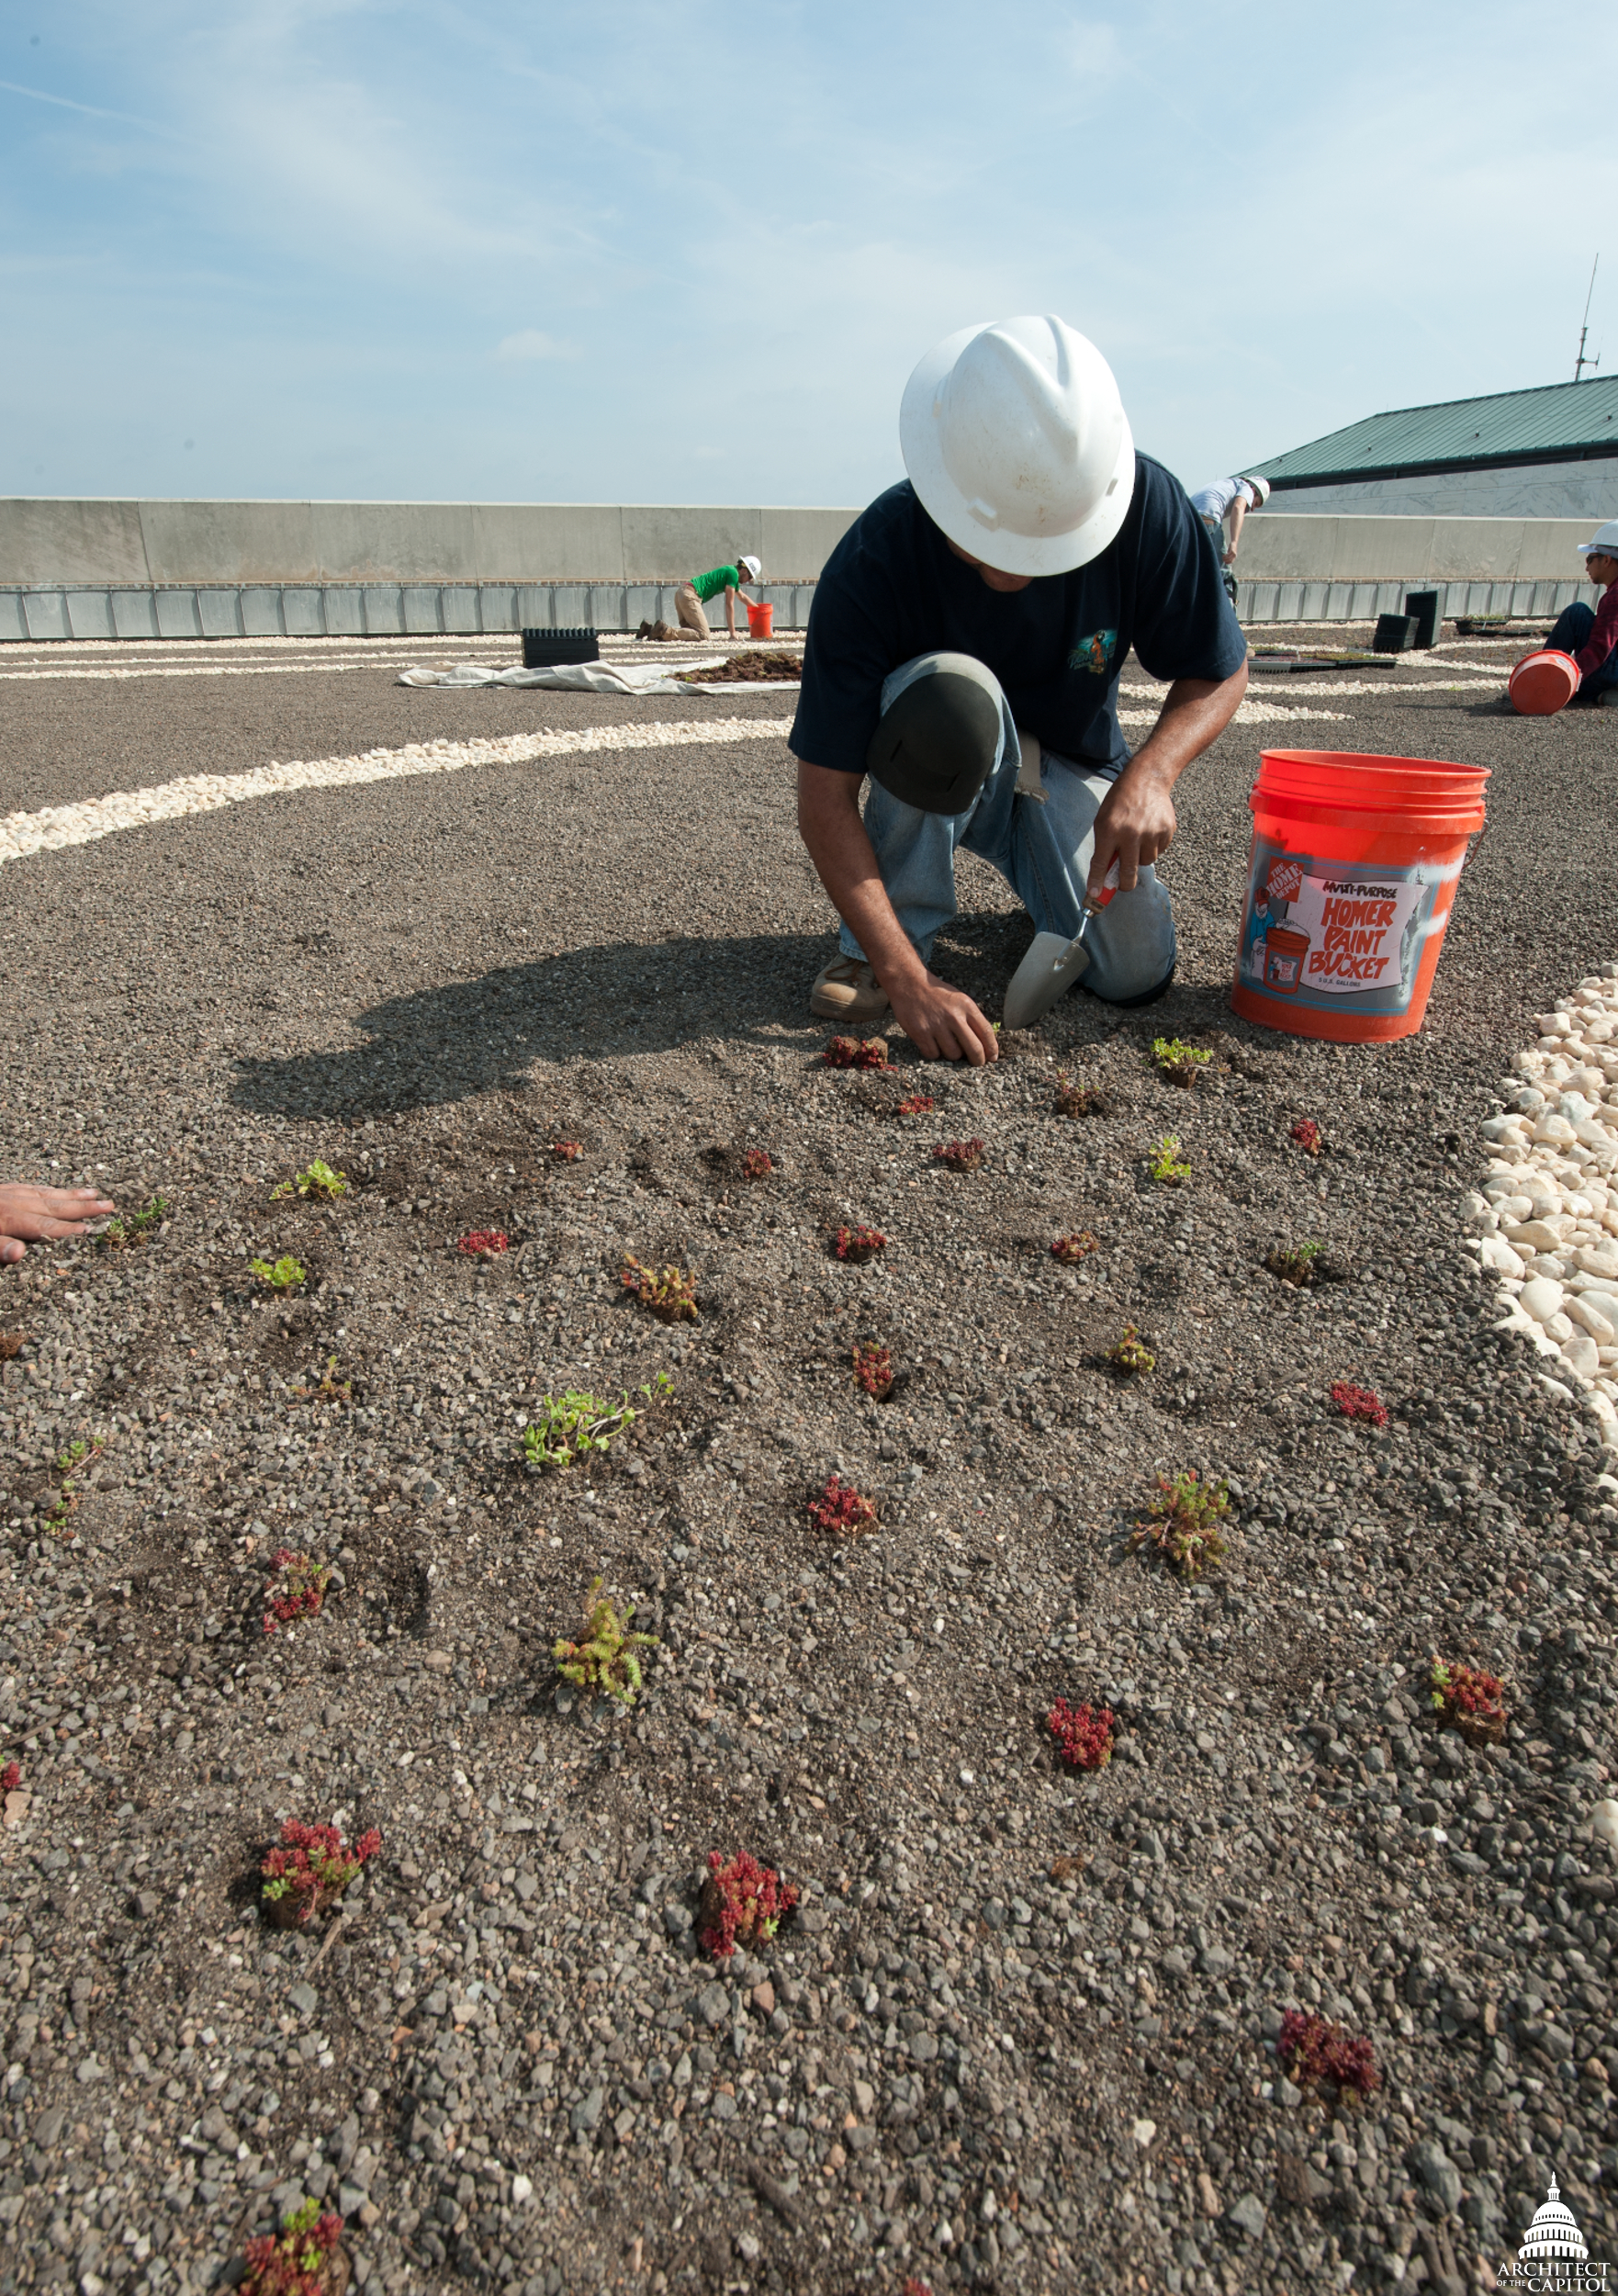 Workers on the Dirksen Building roof plant various types of sedums, a drought-resistant plant that stays green year-round. It has a shallow root system that allows it to grow in only four inches of soil.